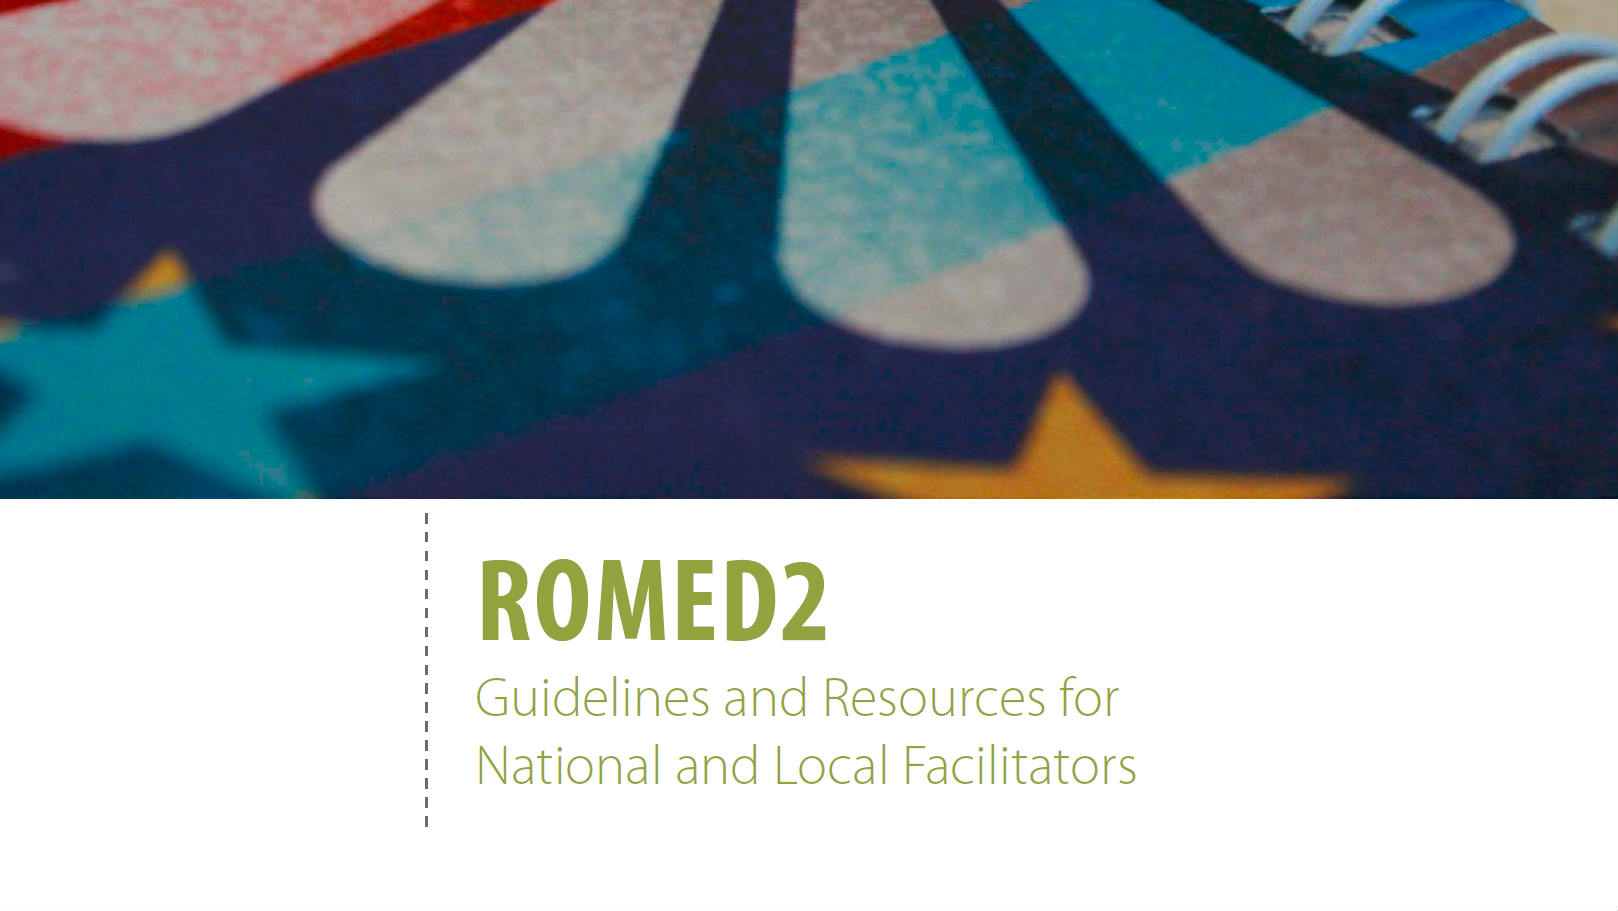 New Guidelines and Resources for national and local facilitators just published